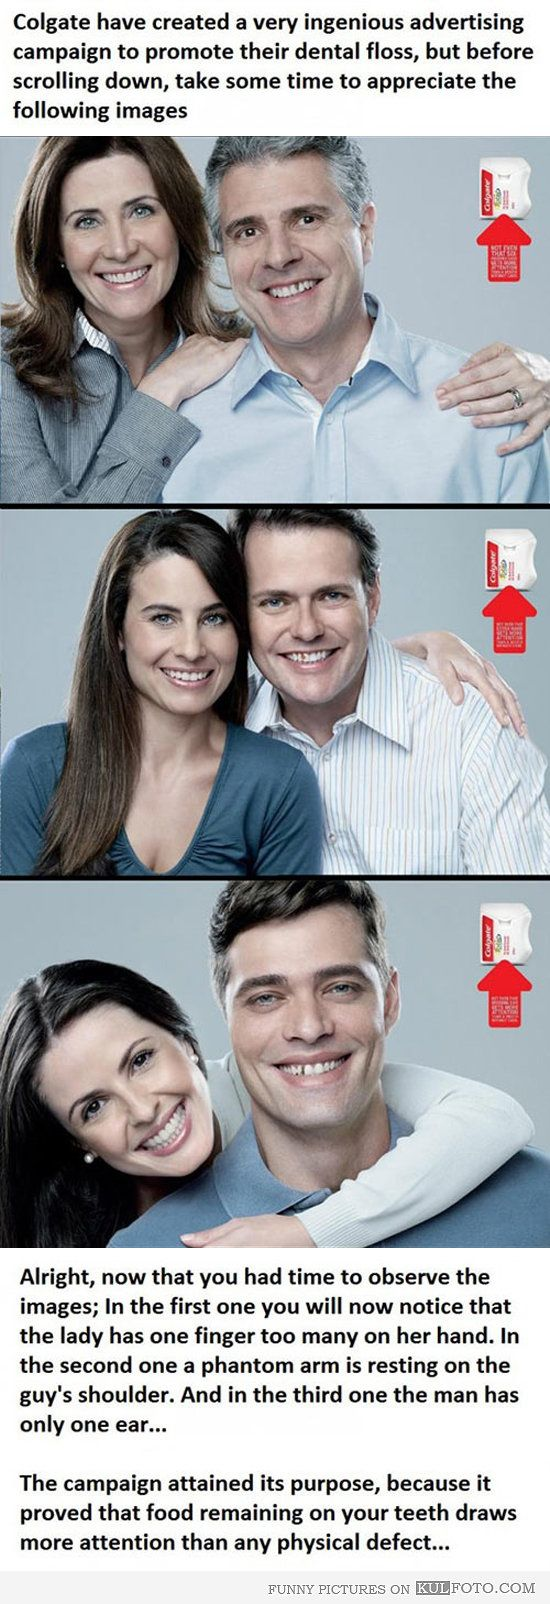 Ingenious advertising campaign - Funny ads by Colgate to prove that food remaining on your teeth is really something to worry about.